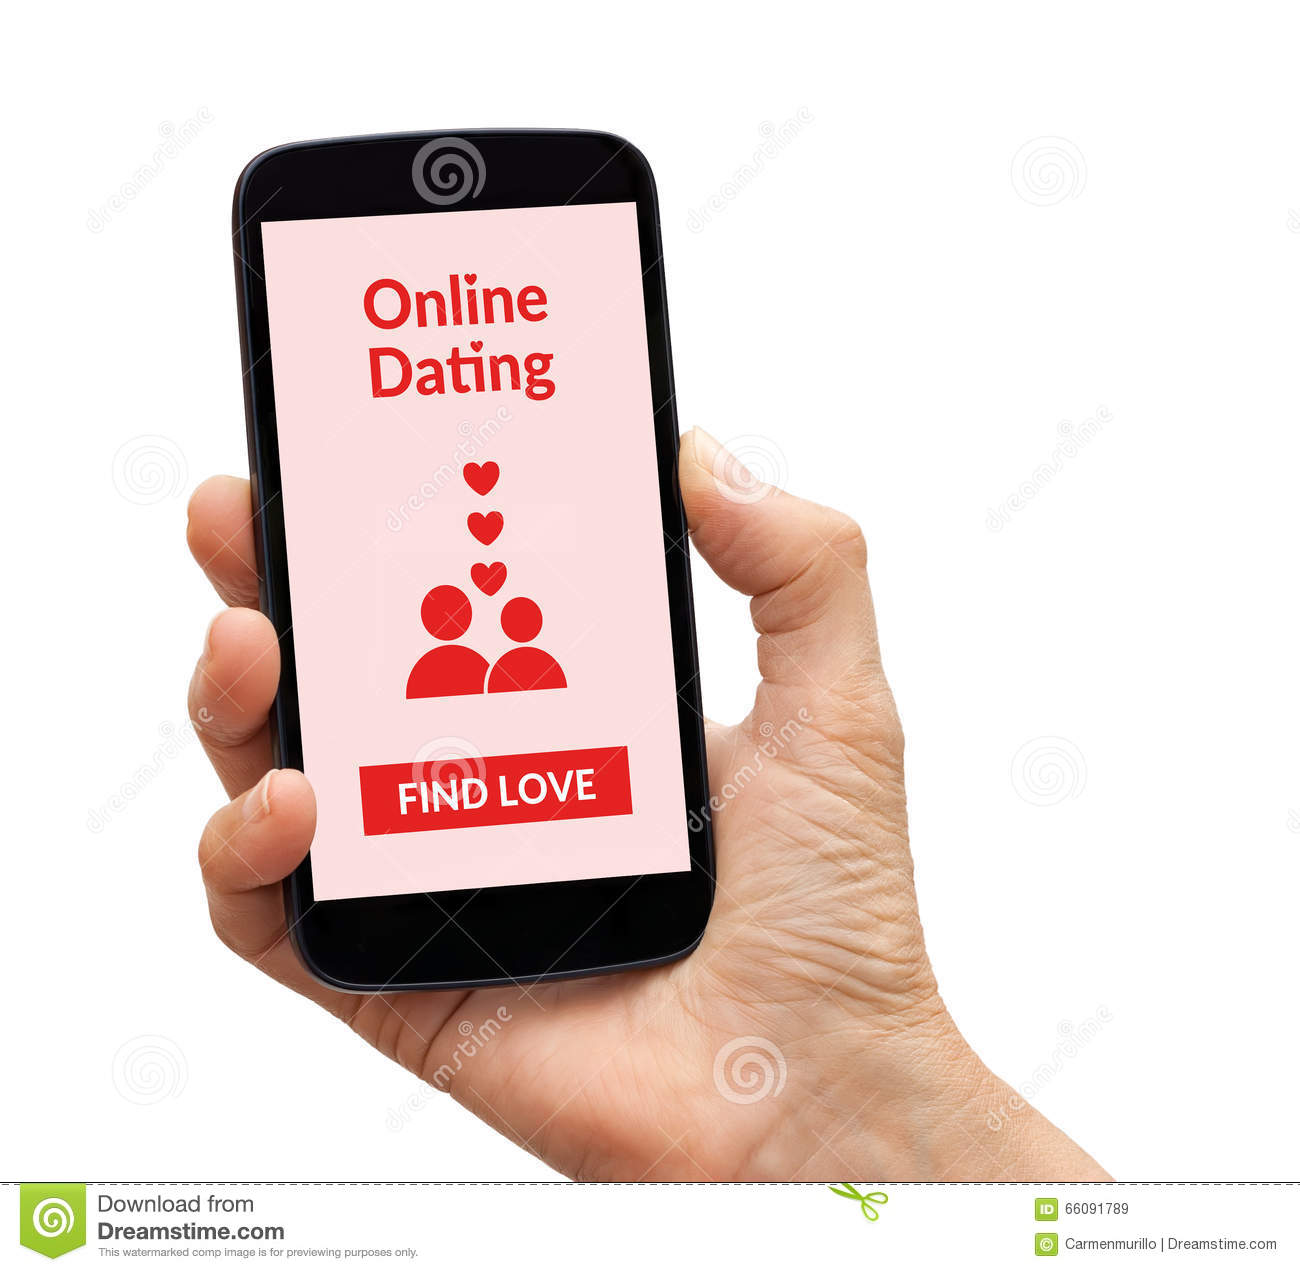 online dating phone date Avoid giving out your real phone number  //wwwzooskcom/date-mix/online-dating-advice/how-to-spot  this version of how to spot an online dating scammer was.